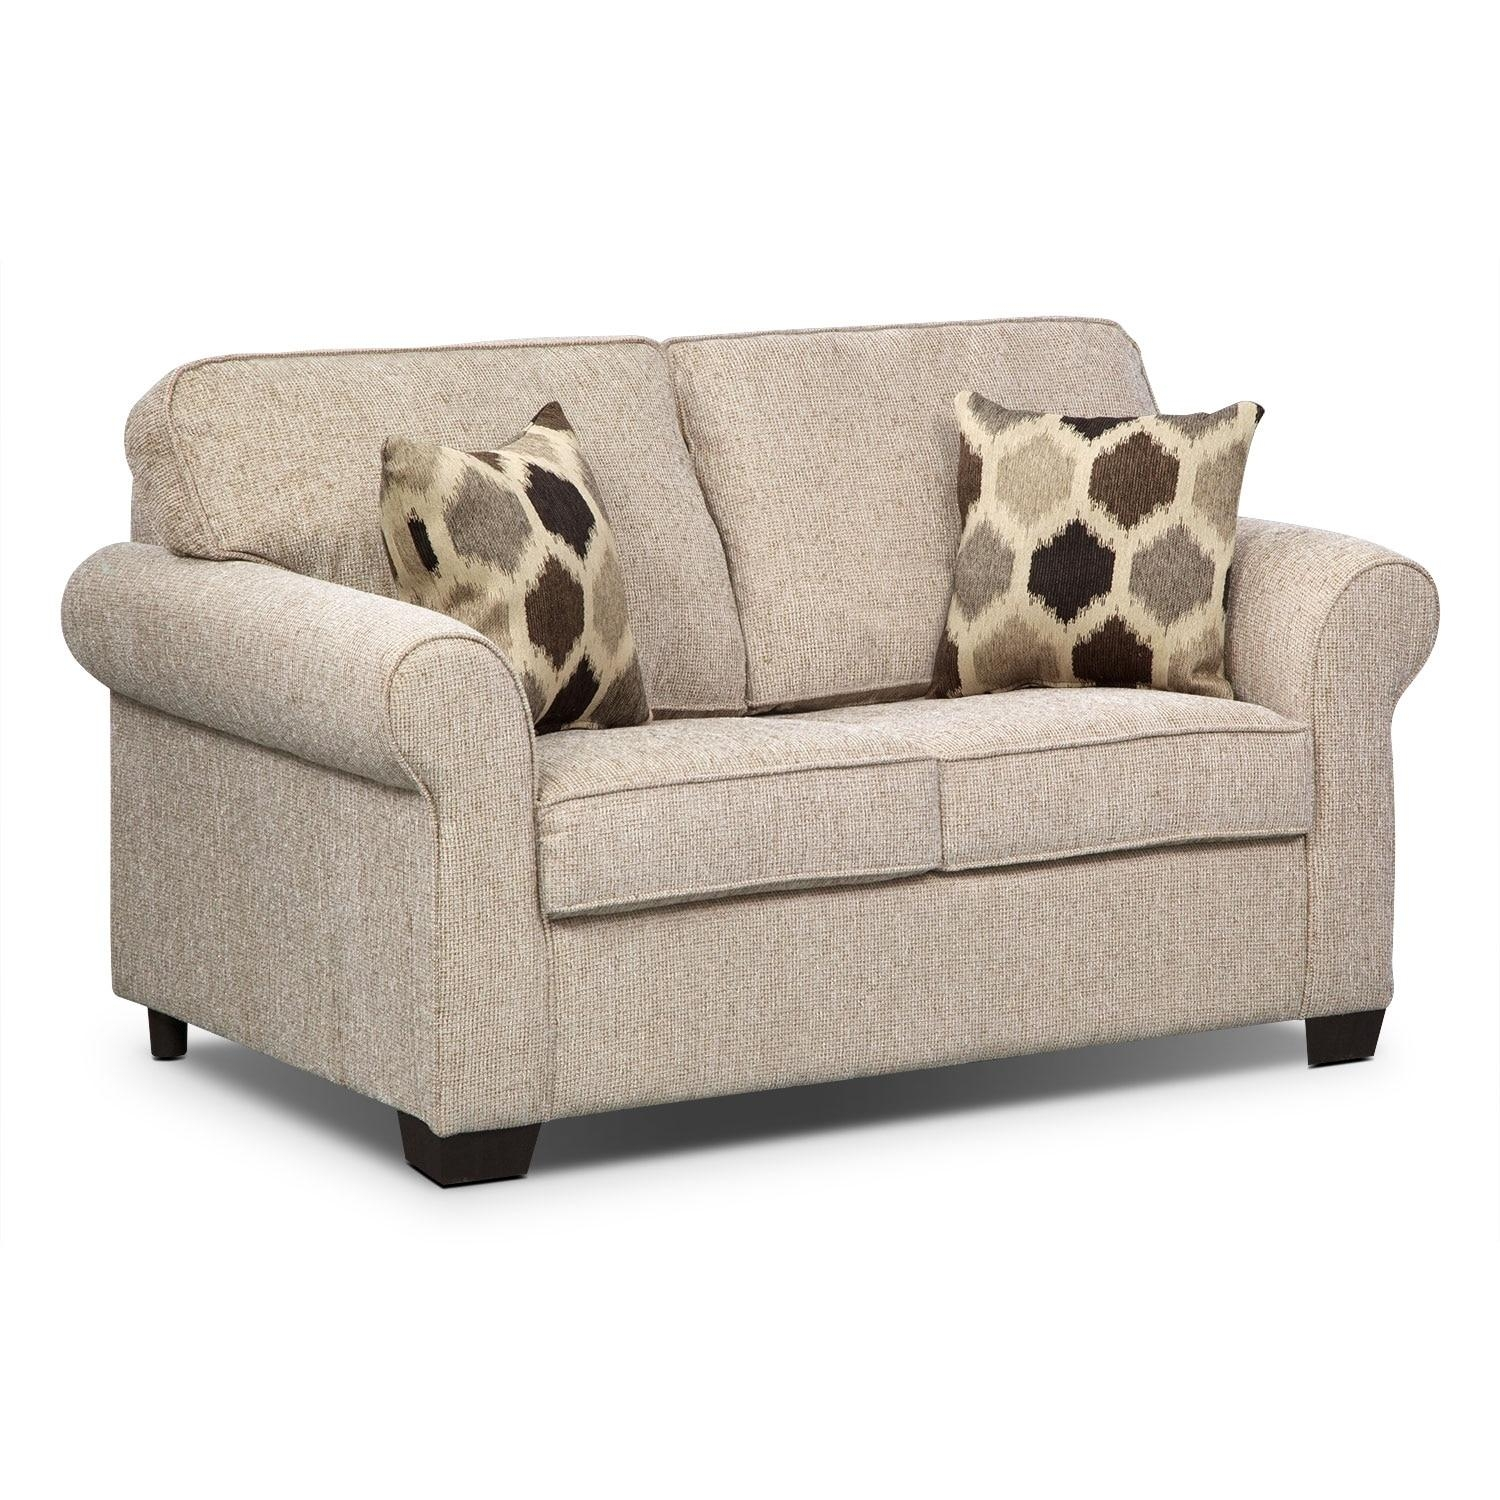 20 Best Collection of Twin Sleeper Sofa Chairs  Sofa Ideas